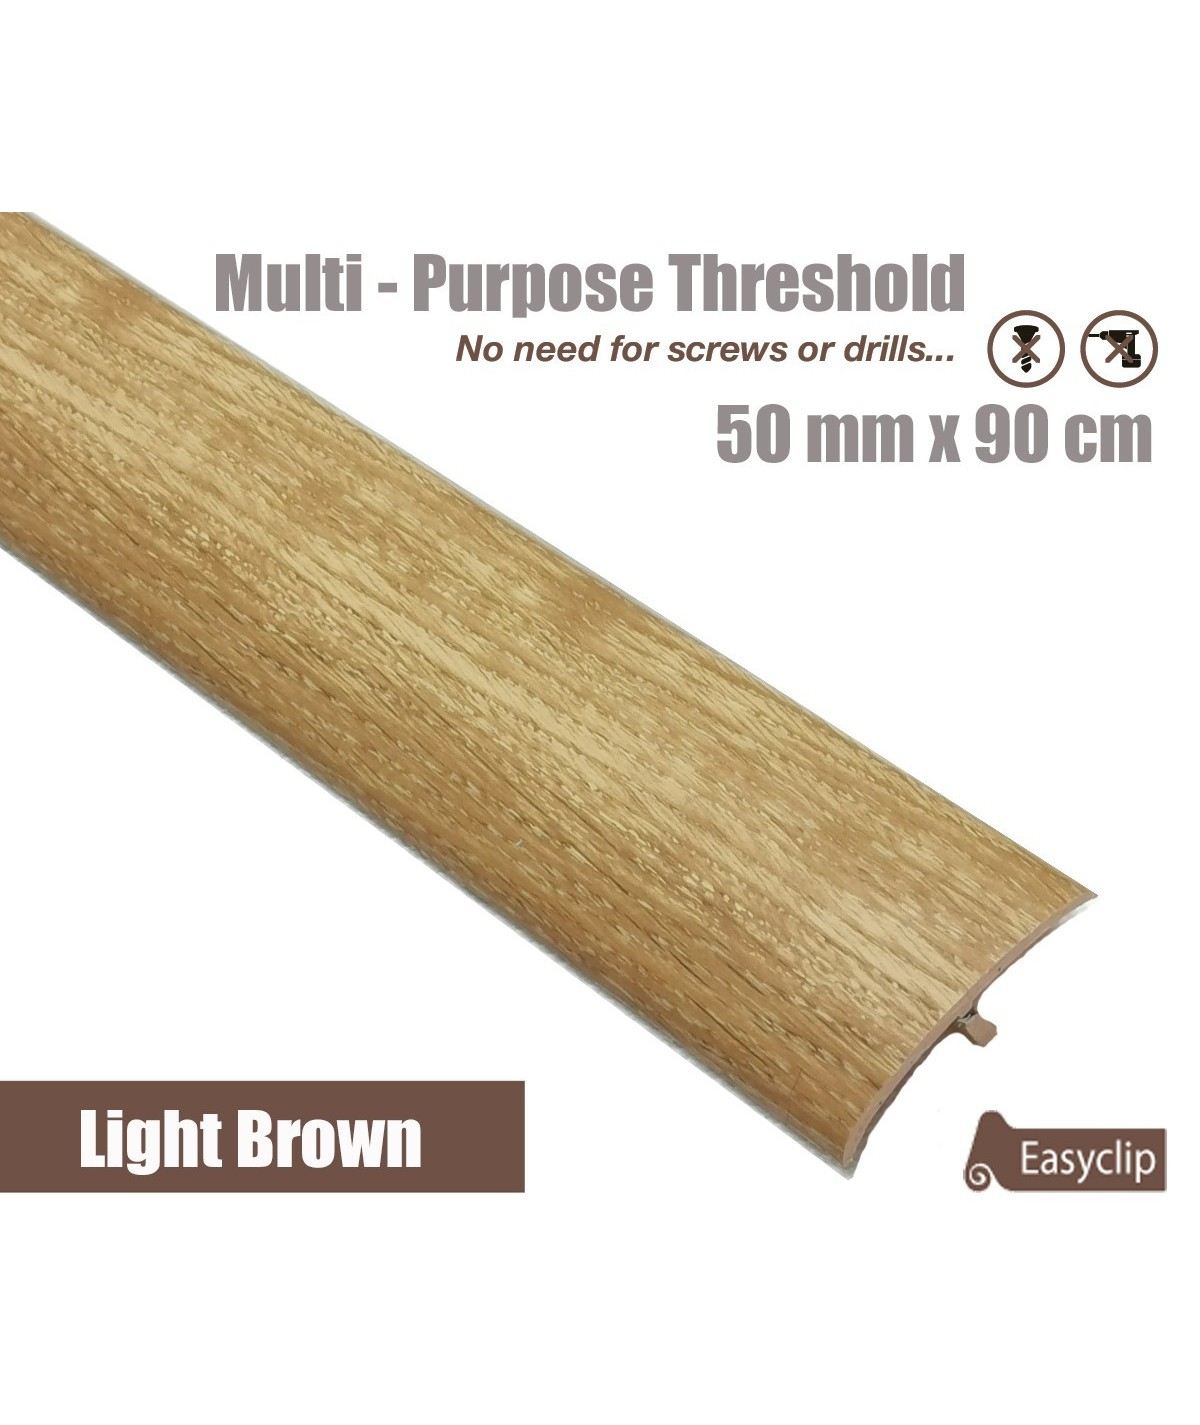 Light Brown Transition Threshold Strip 50mm x 90cm Multi-Height/Pivots Multi Floor